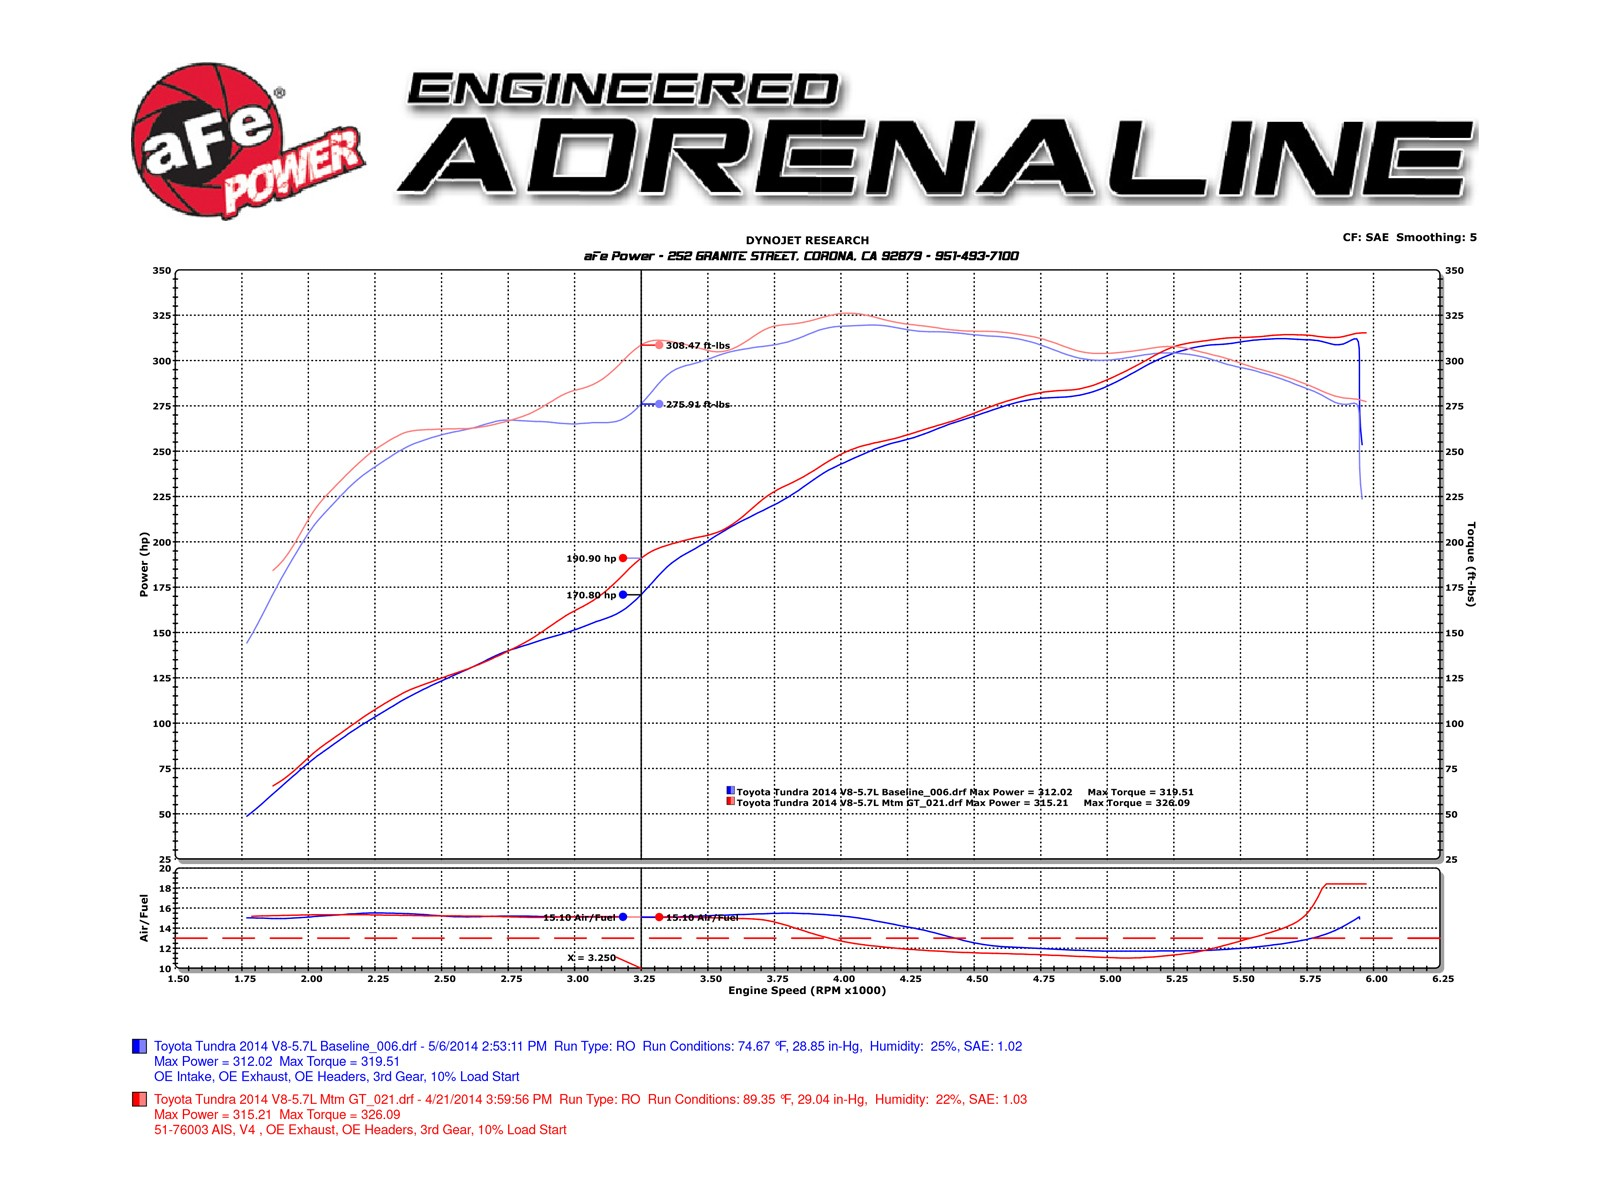 Momentum Gt Pro 5r Cold Air Intake System Afe Power 2014 Tundra Engine Diagram Adds Up To 38 Flow Increase 20 Hp Horsepower 33 Lbs X Ft Torque Max Gains